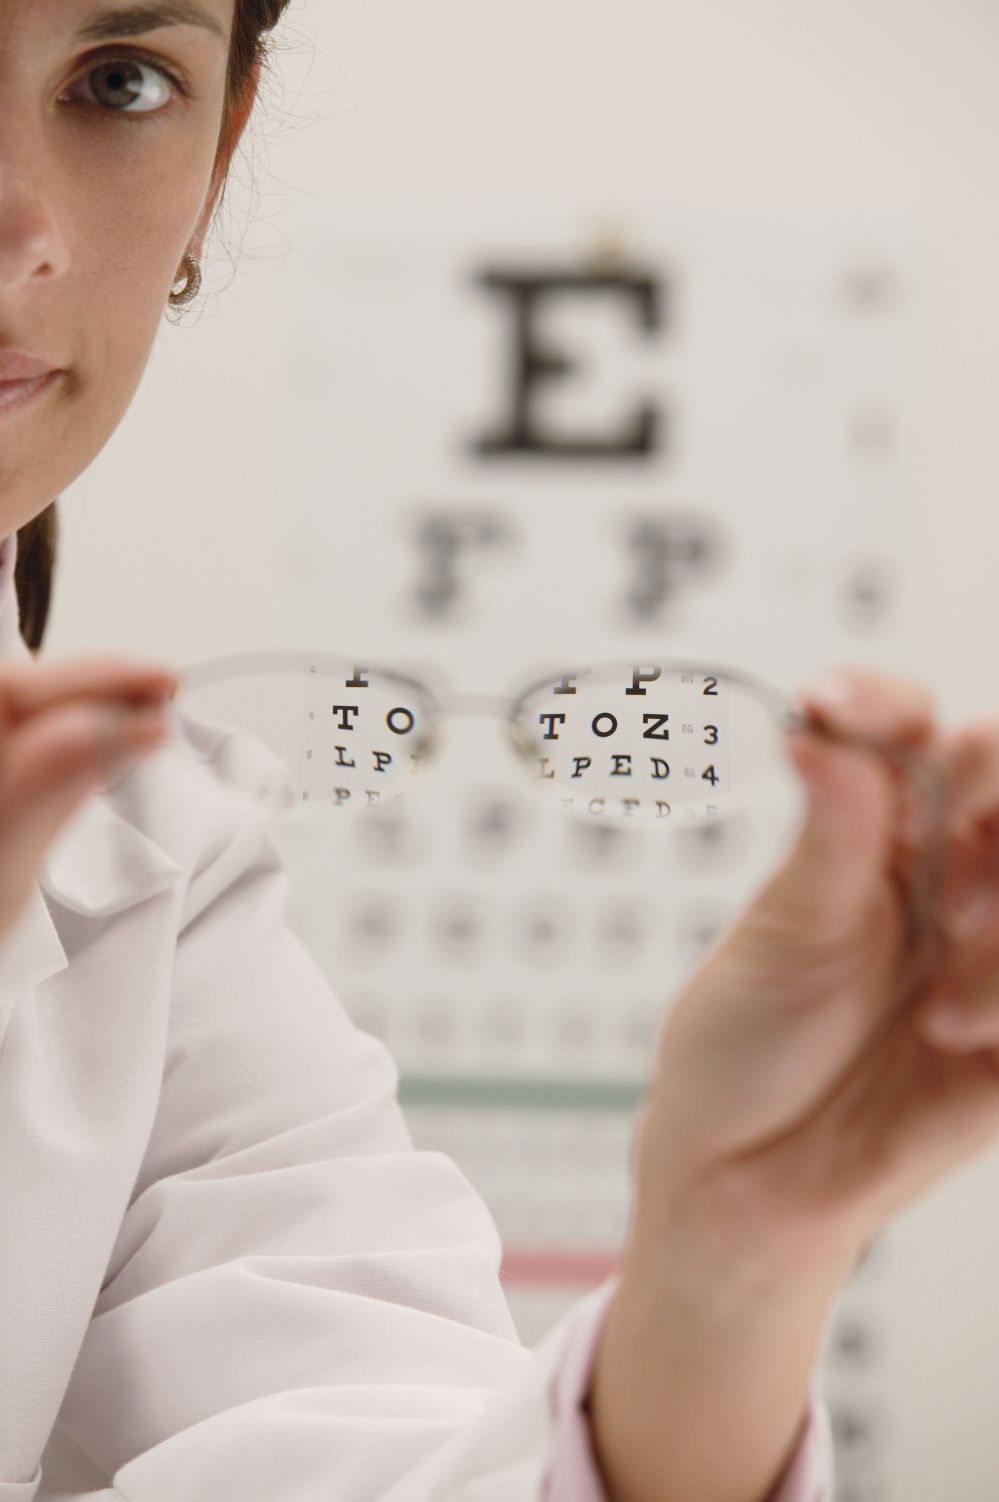 Eye examinations in Anchorage, AK